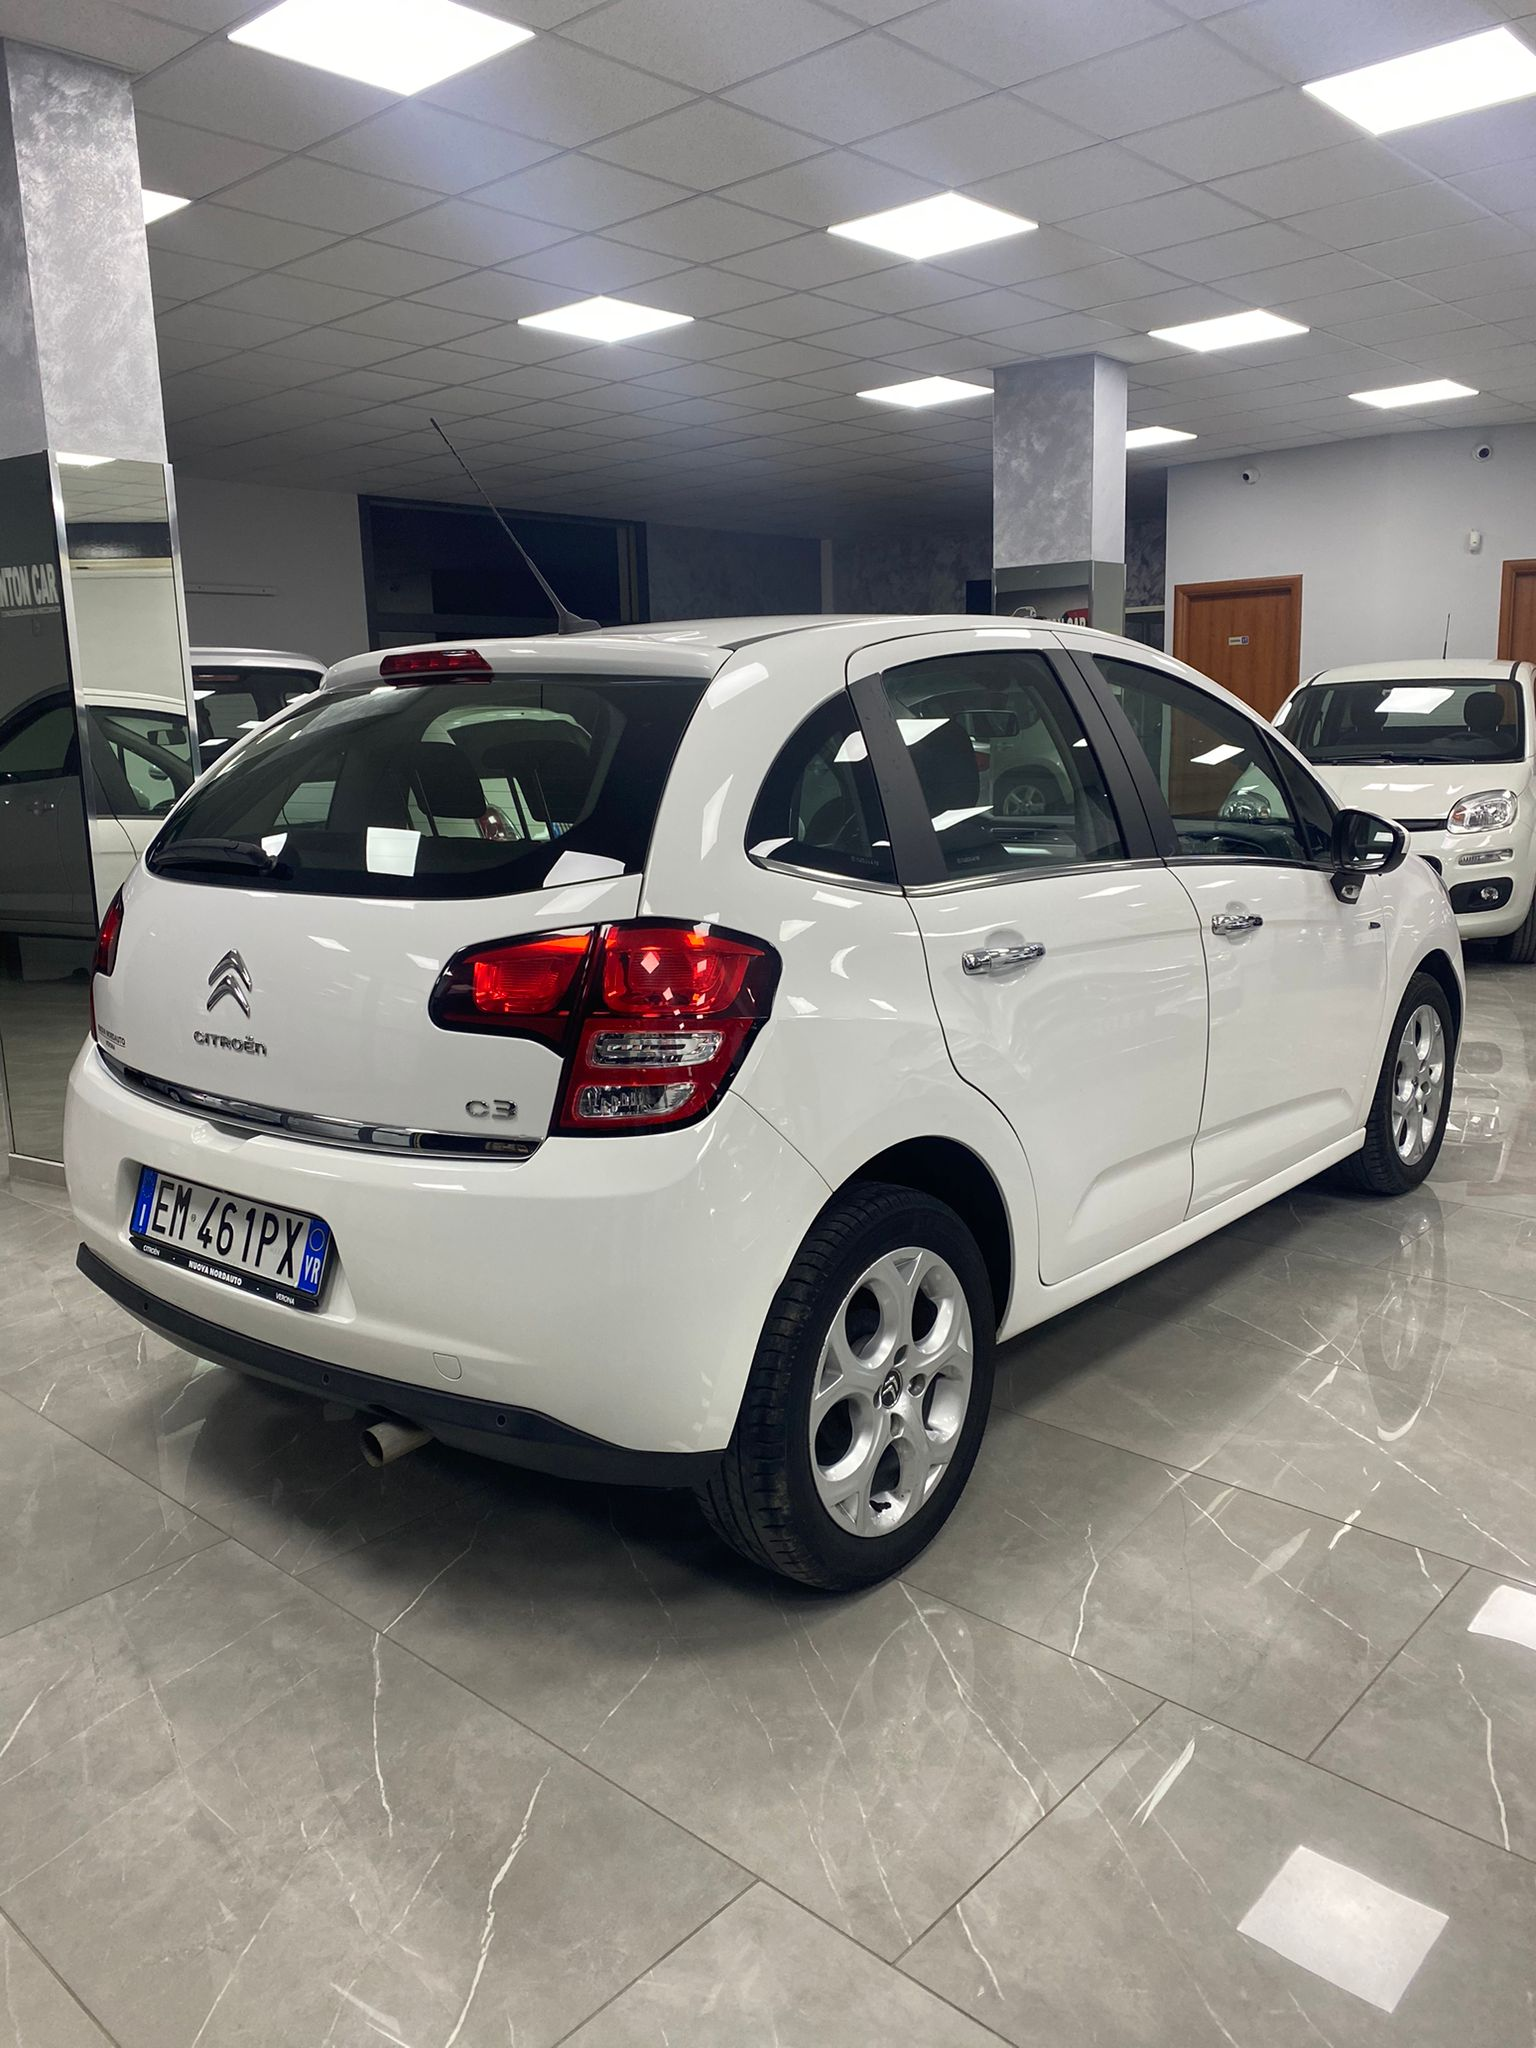 CITROEN C3 C3 1.4 e-HDi 70 airdream CMP Exclusive